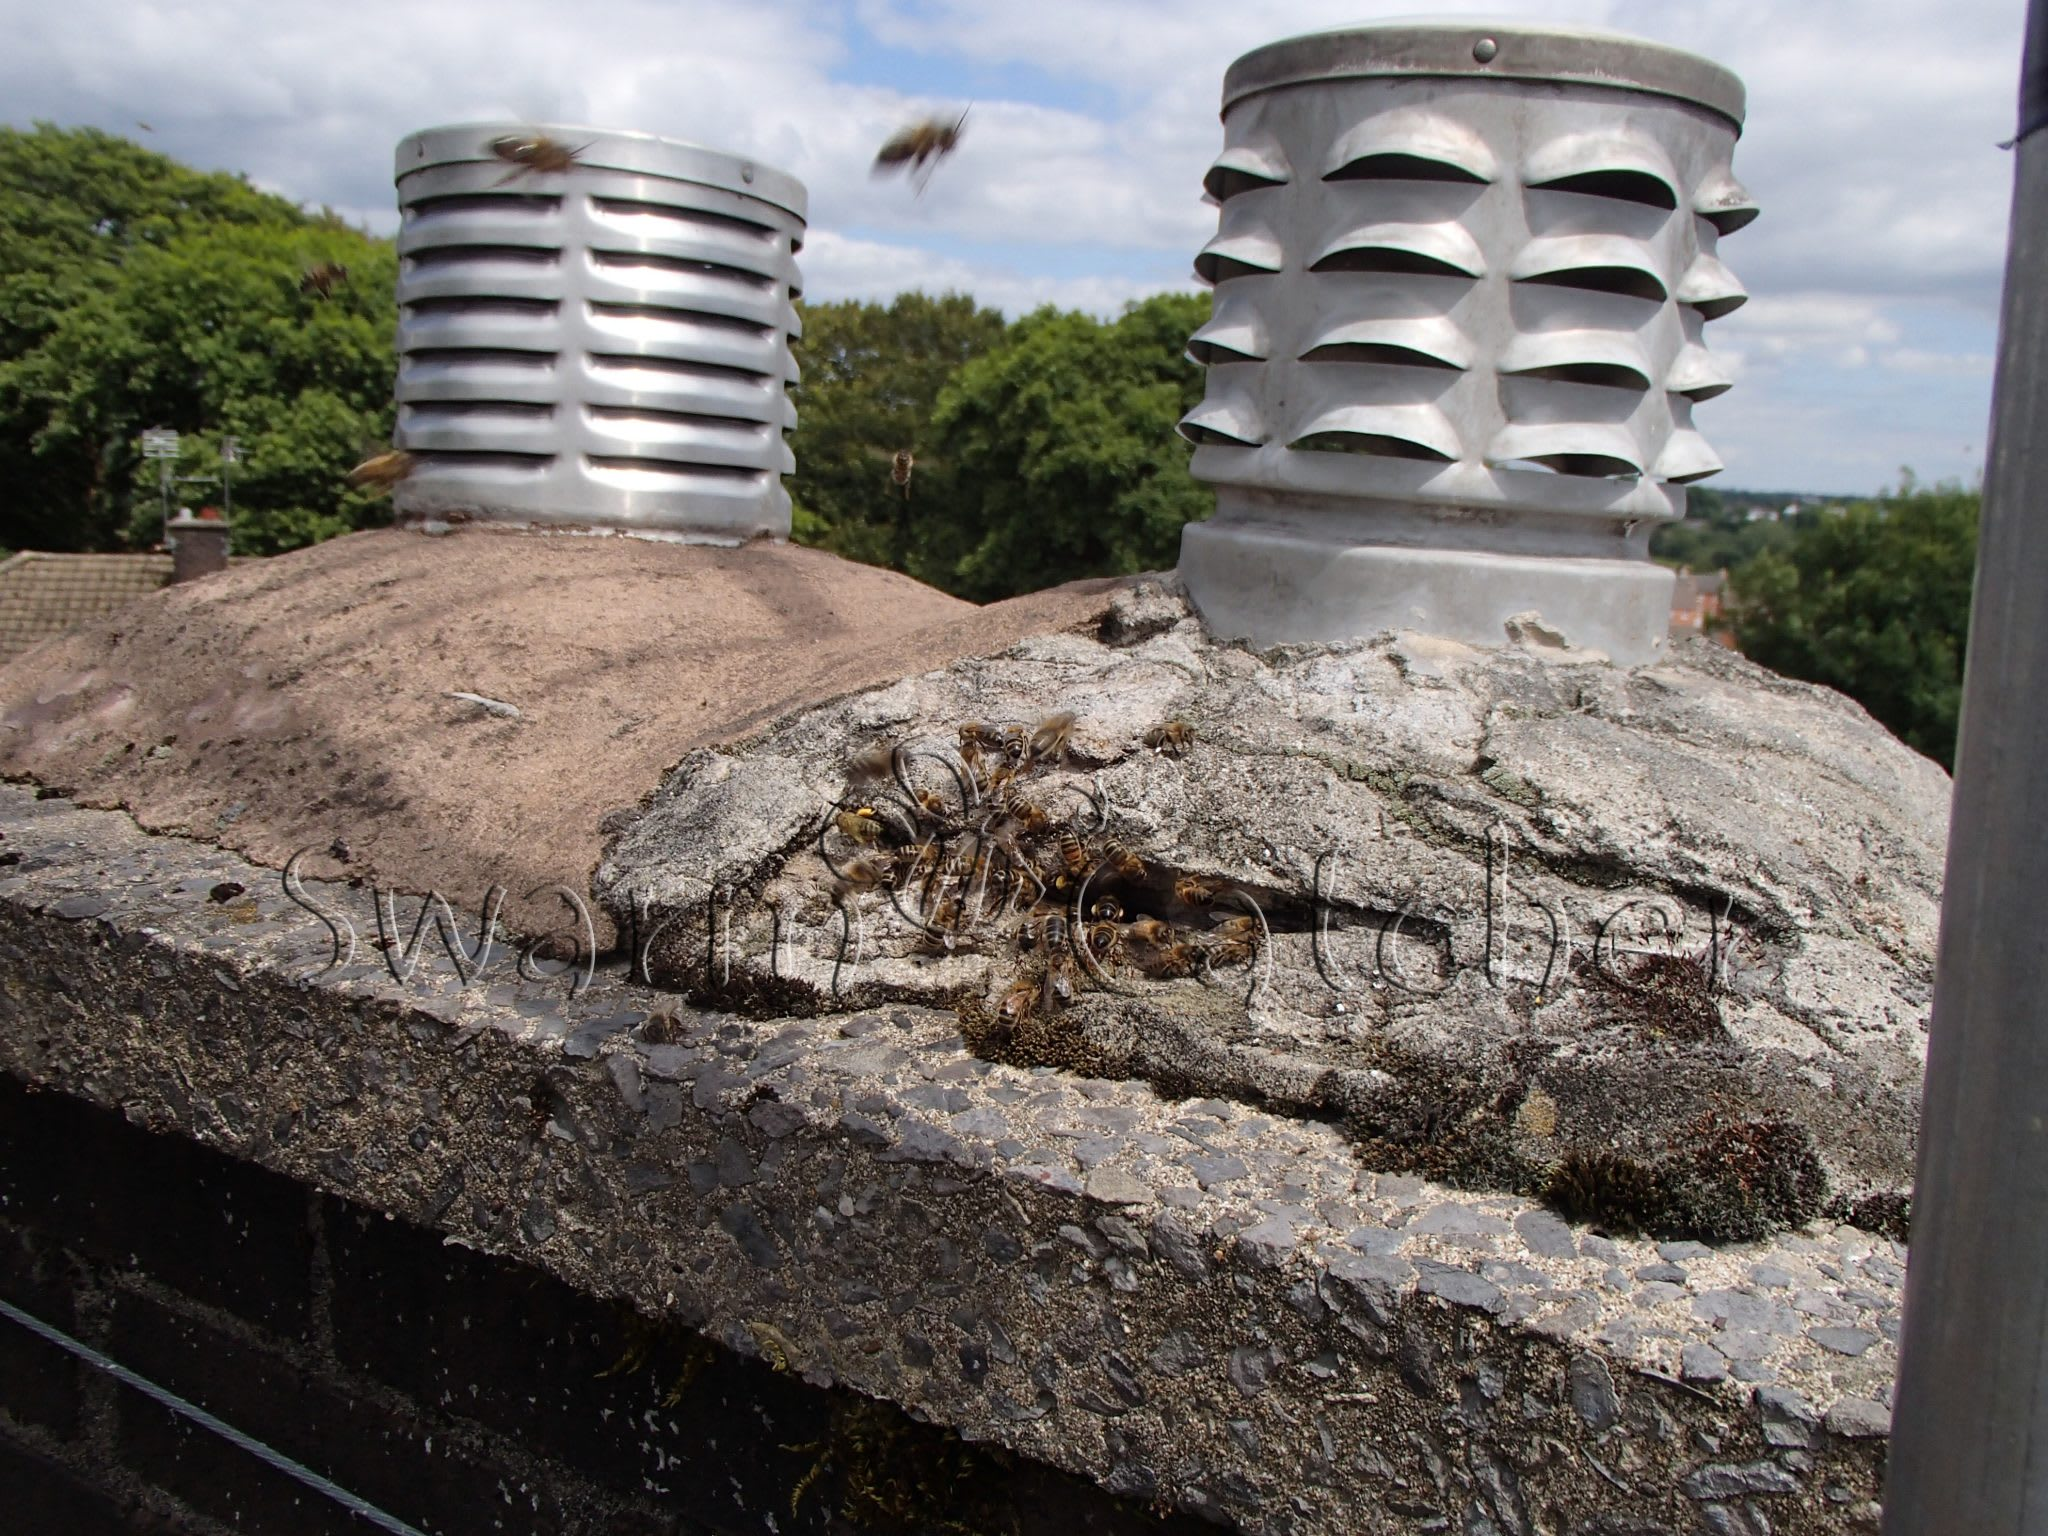 Honey bees in chimney - Here's what you need to know